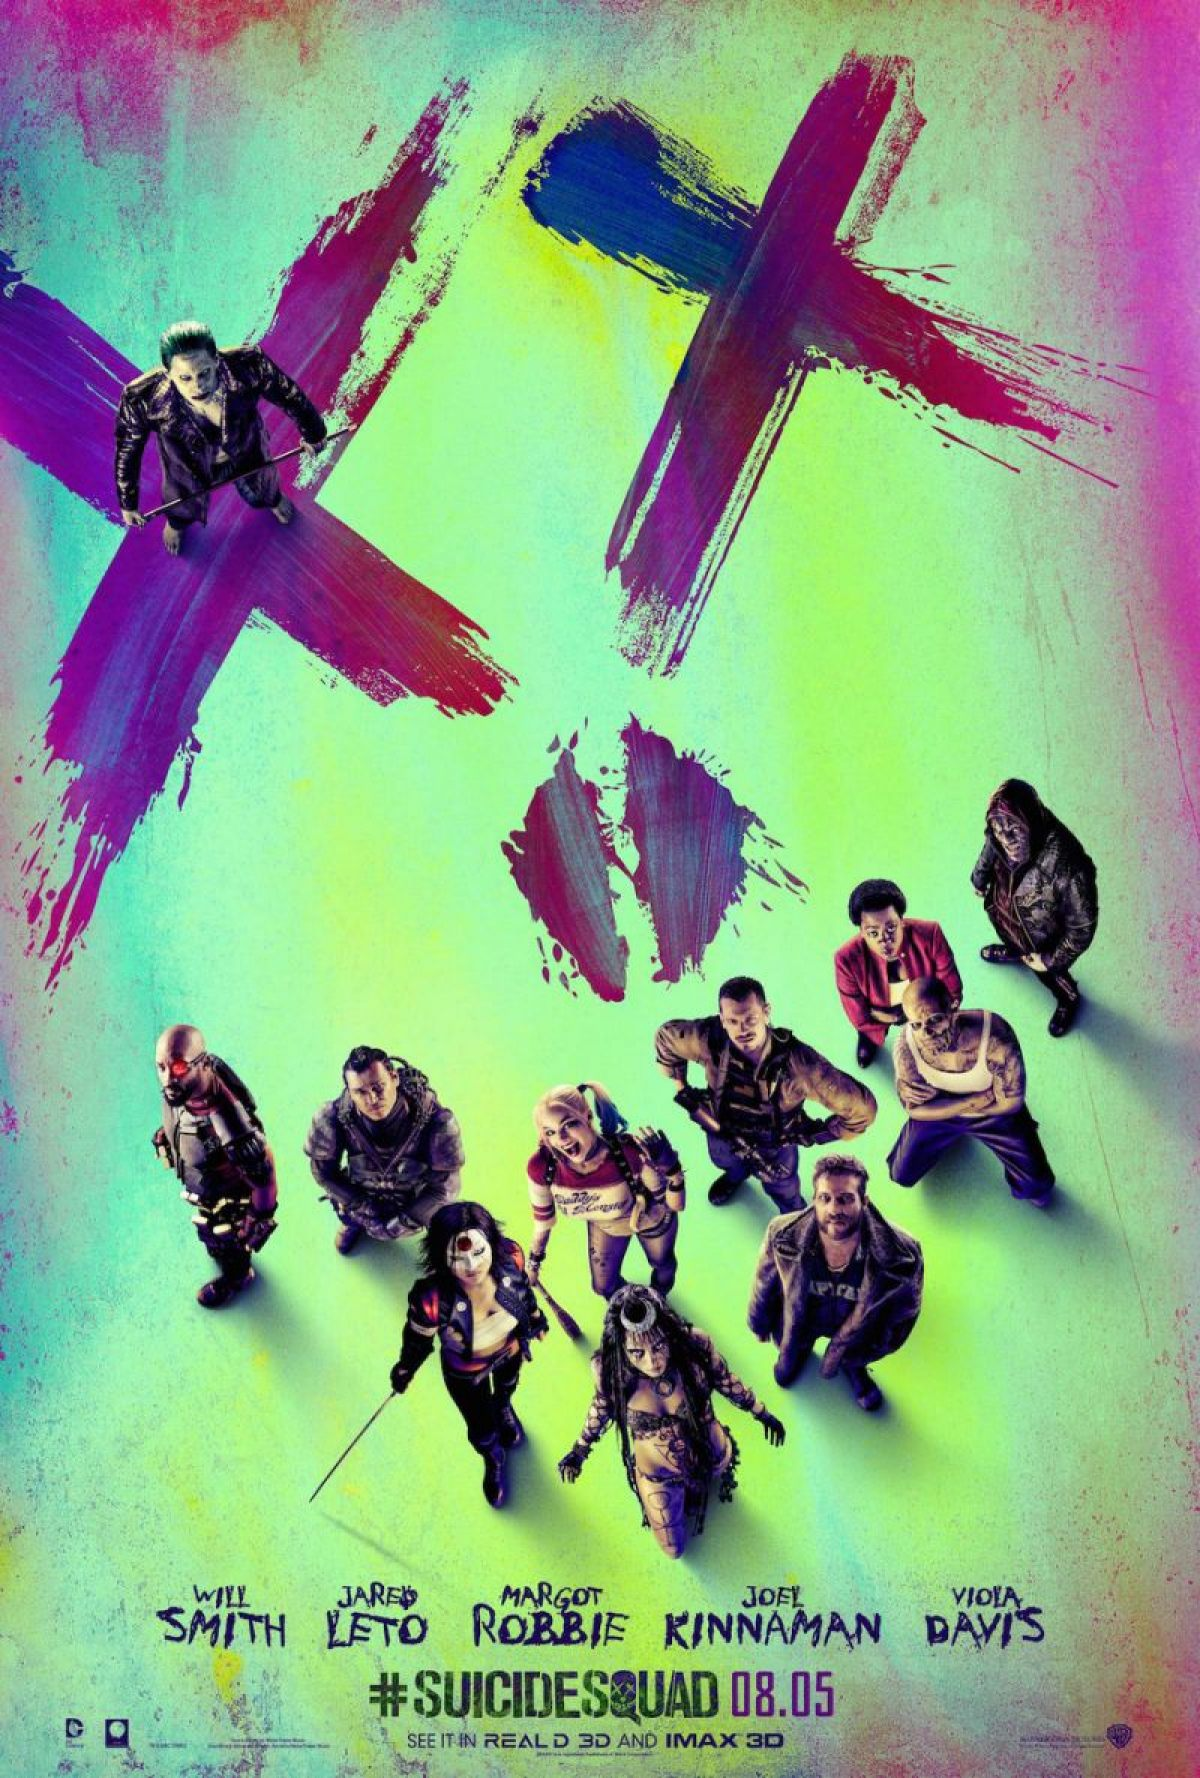 Suicide-Squad-Poster-Large_1200_1778_81_s